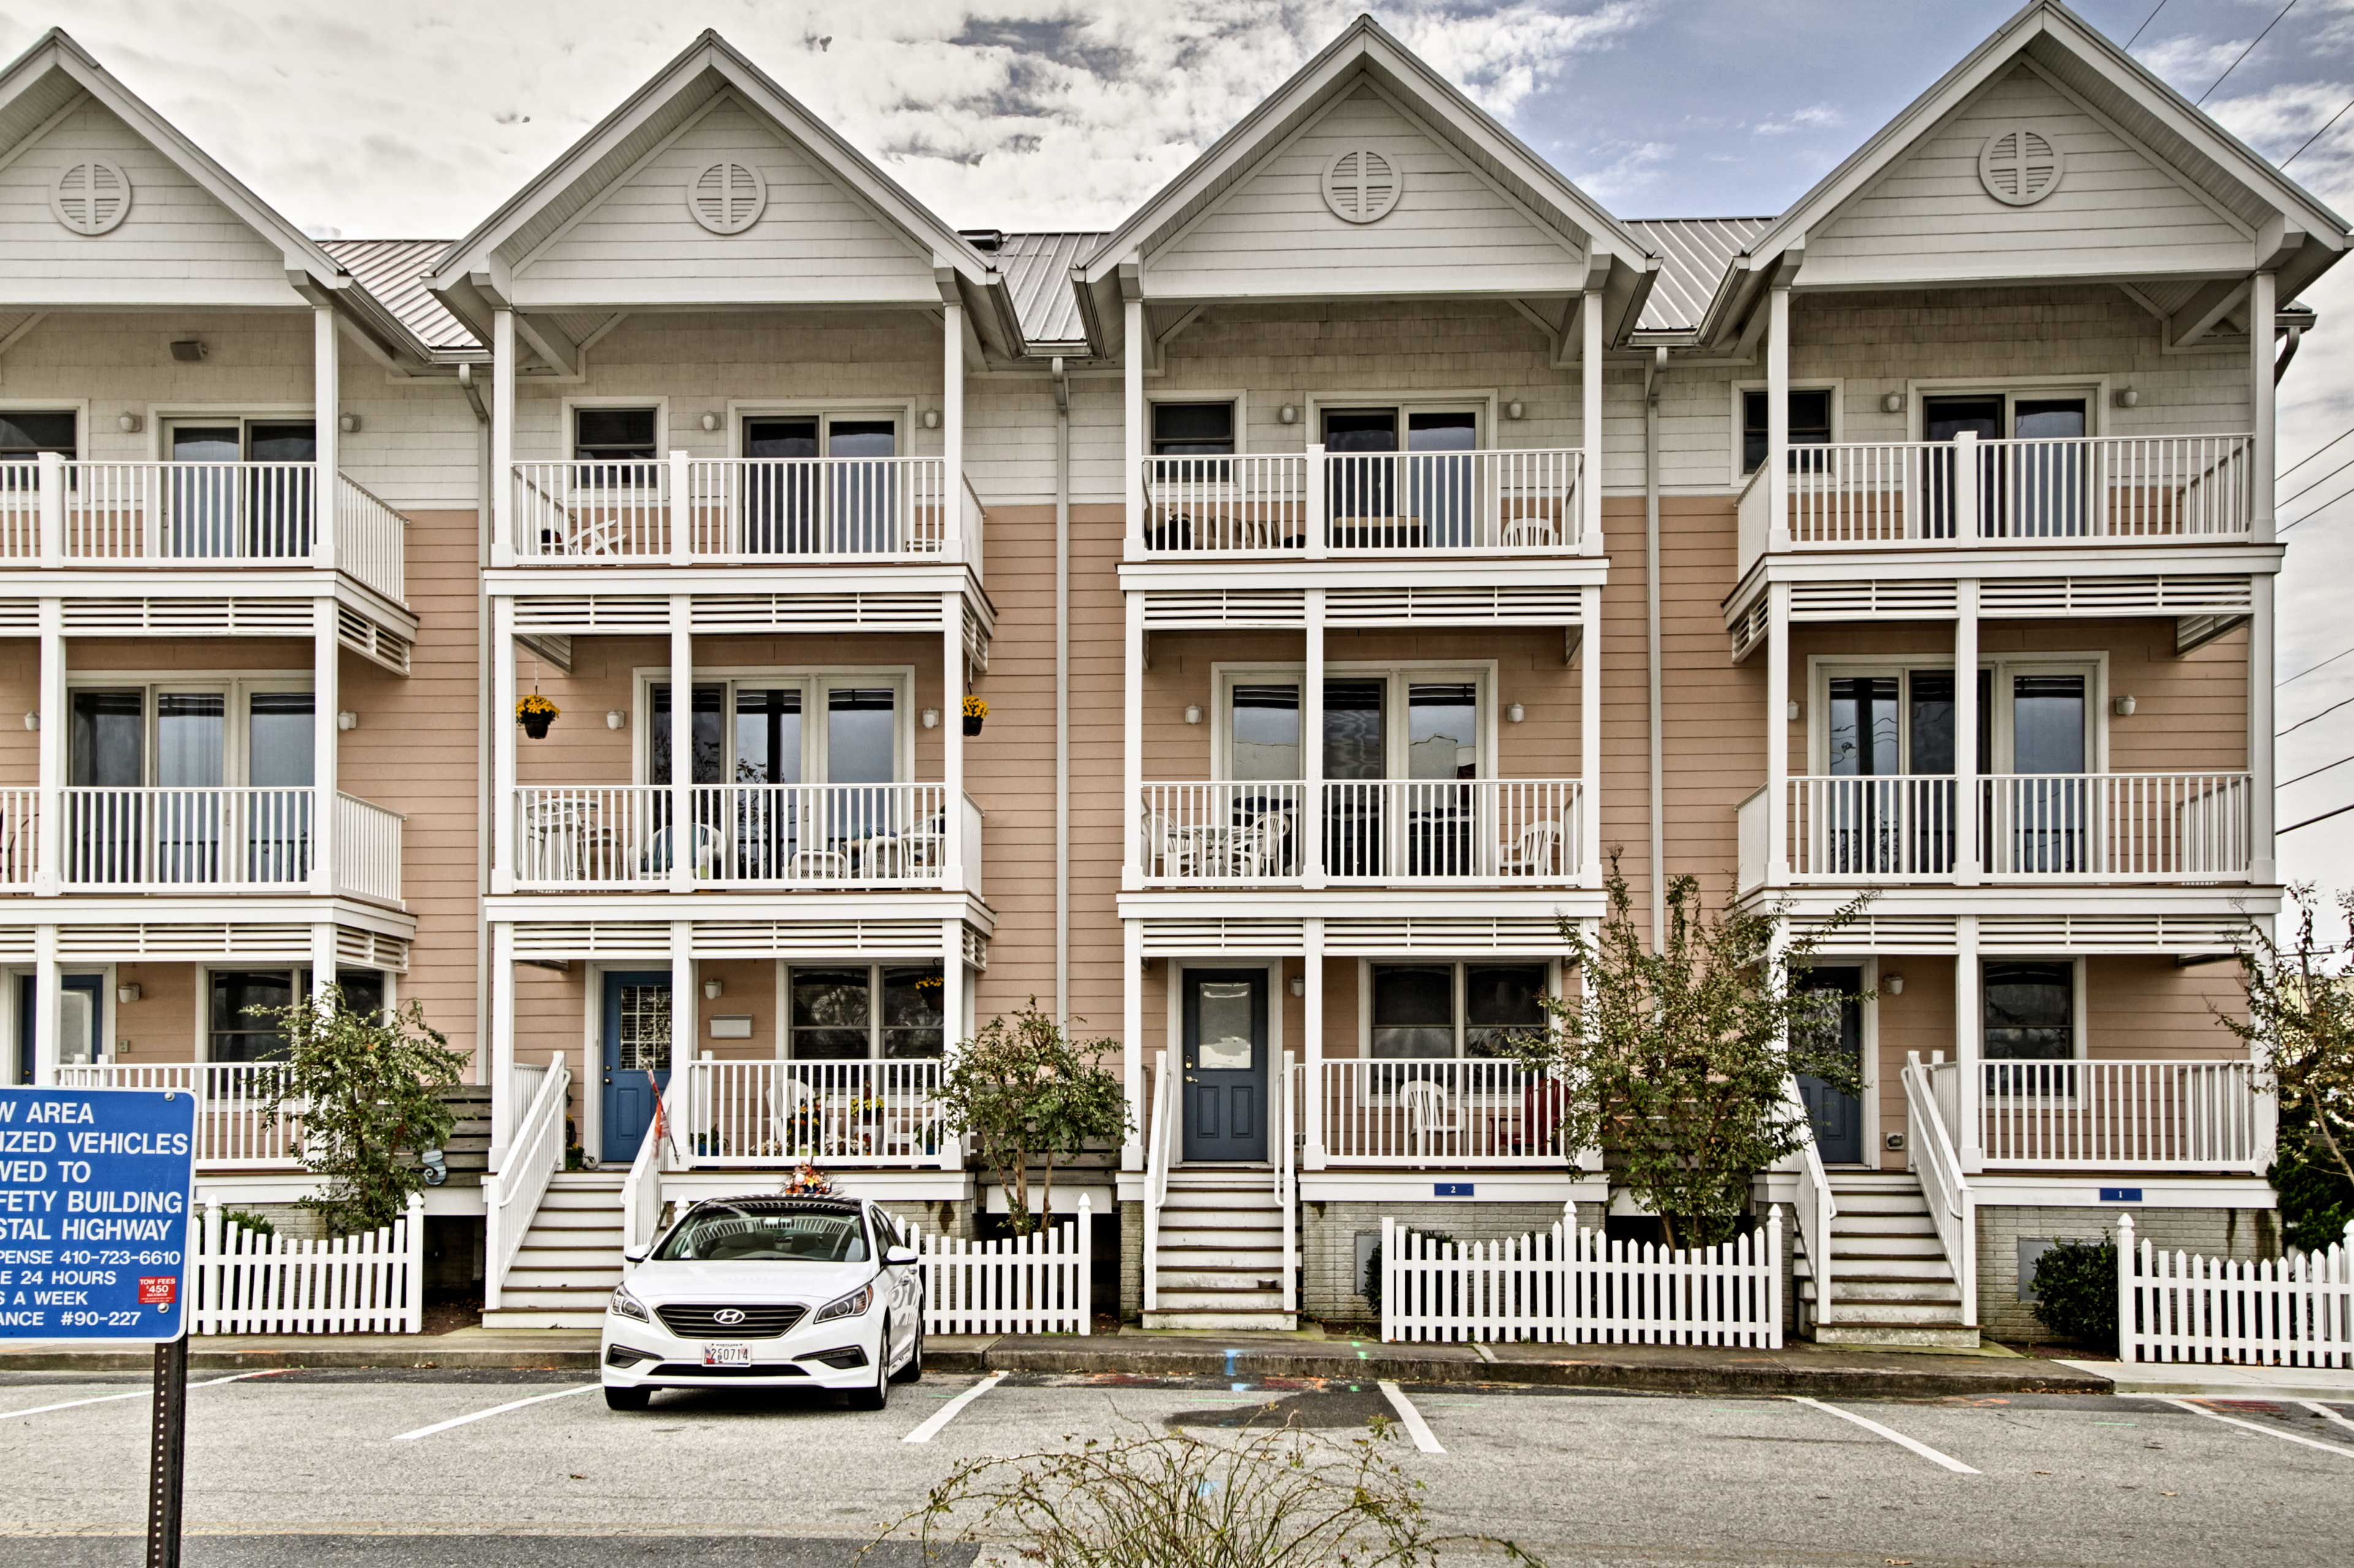 This townhome has 4 bedrooms, 3.5 baths & 3 balconies with ocean and bay views.